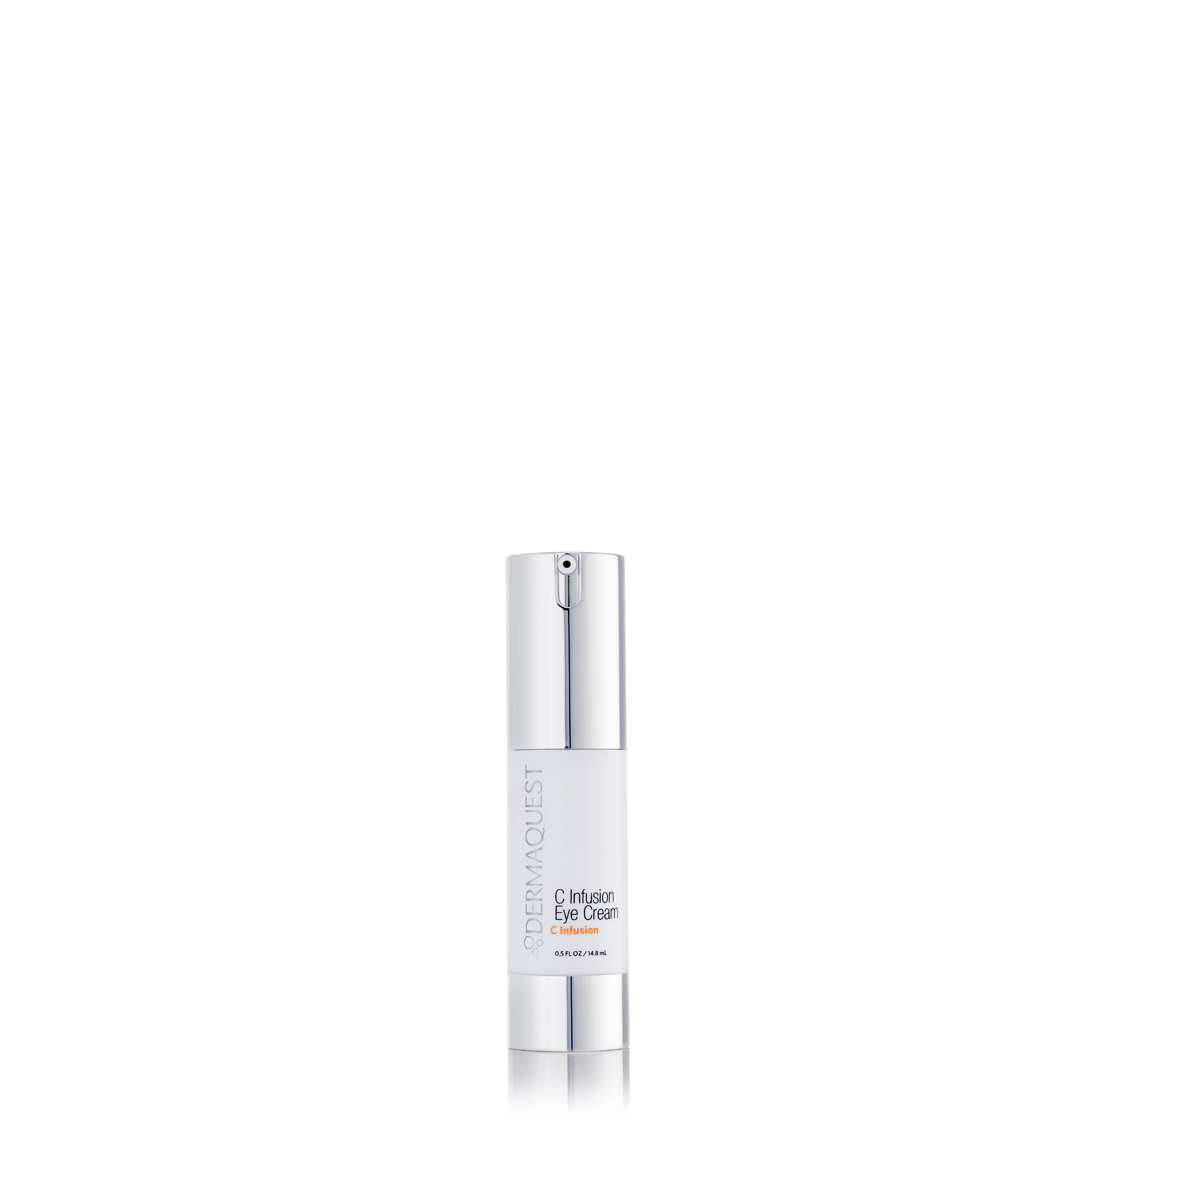 C Infusion Eye Cream- C Infusion (1)